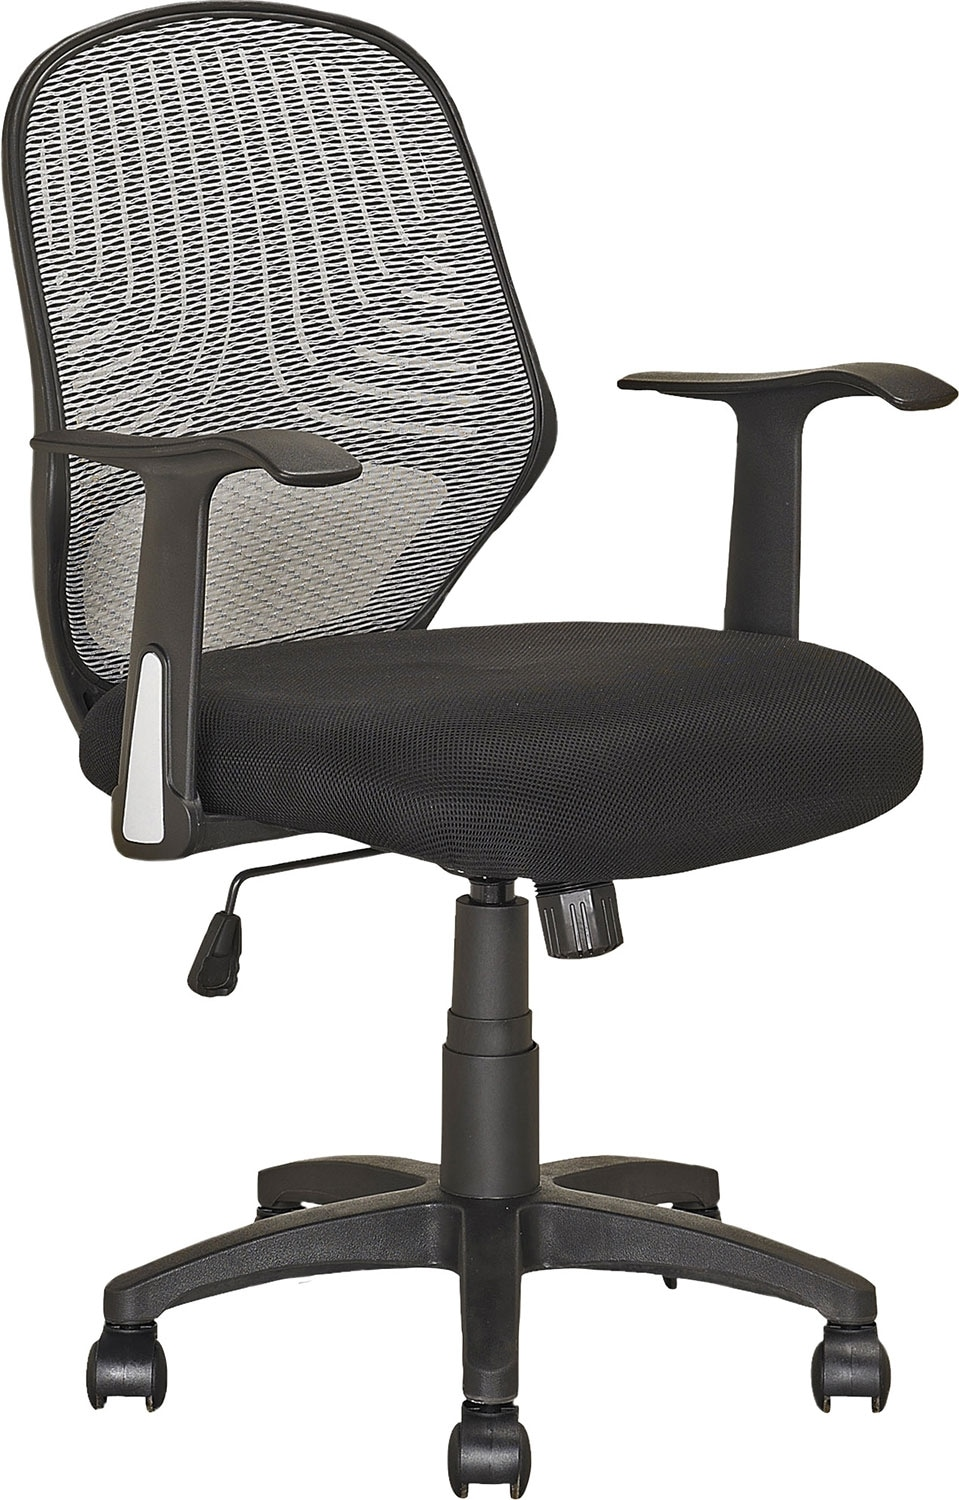 Dallas soft fabric office chair with back support united furniture warehouse - Home office furniture dallas ...